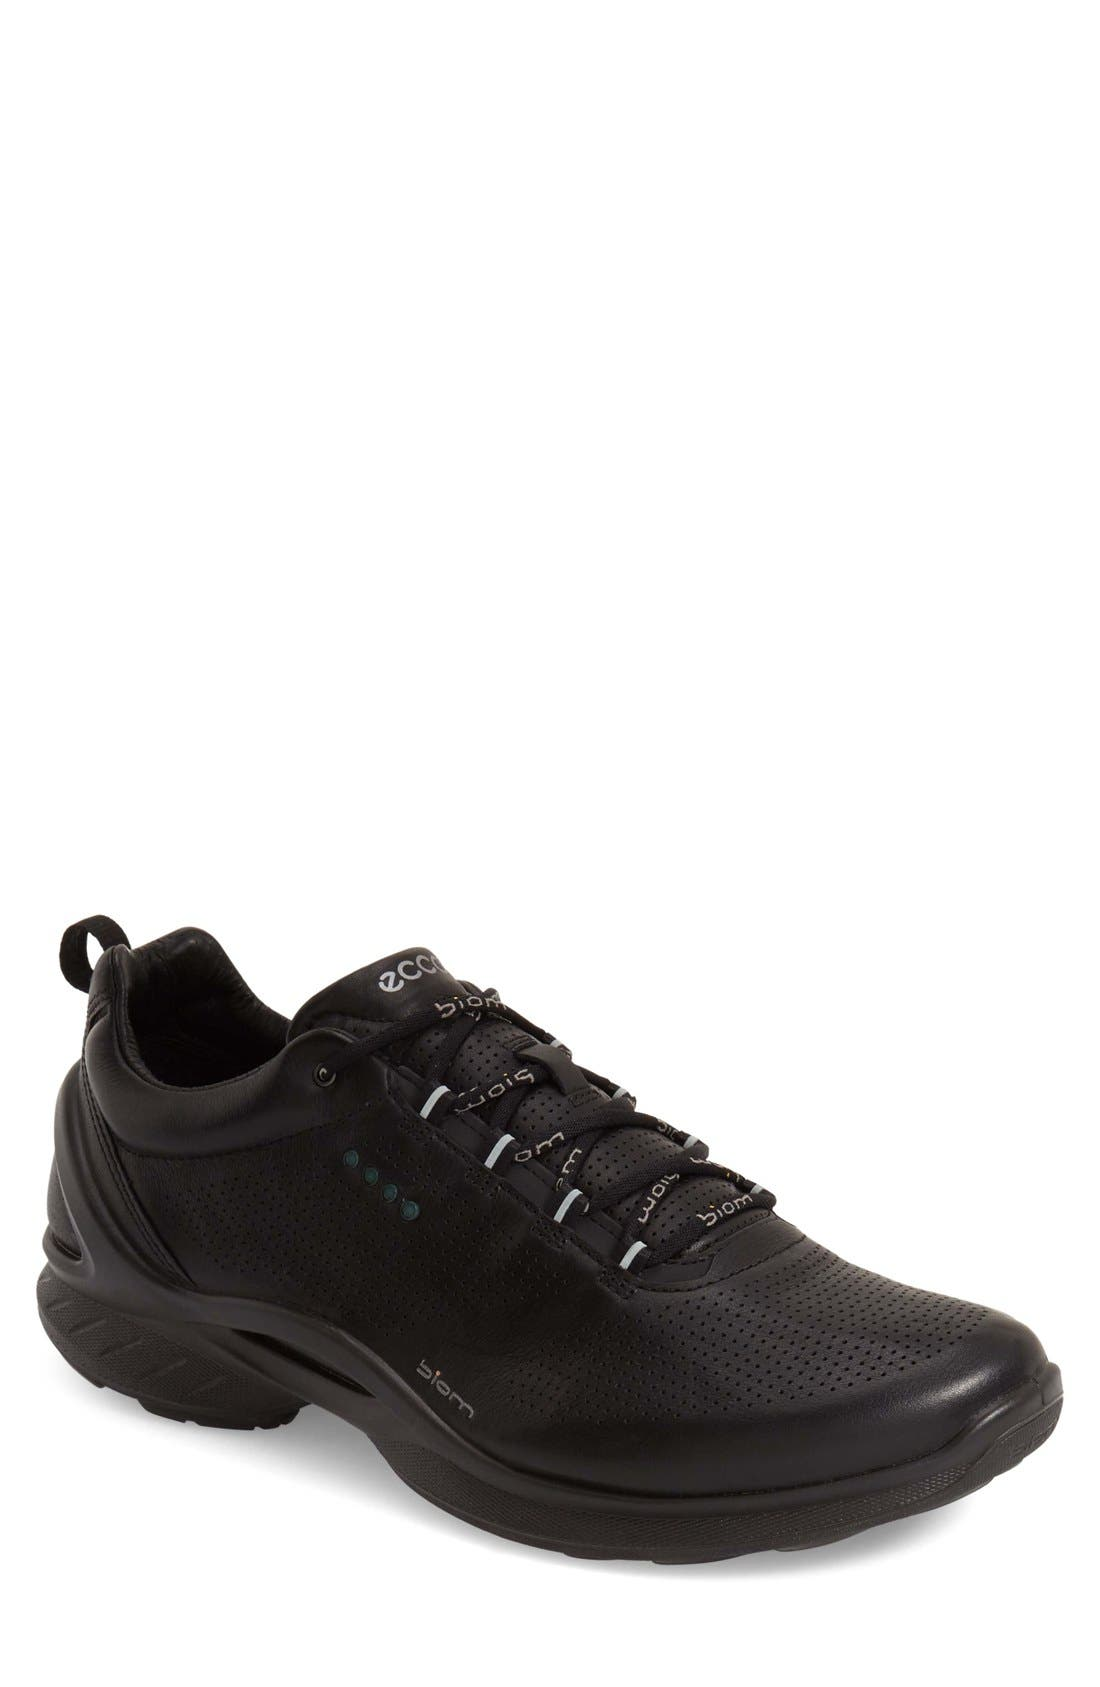 'BIOM Fjuel' Sneaker,                             Main thumbnail 1, color,                             BLACK LEATHER